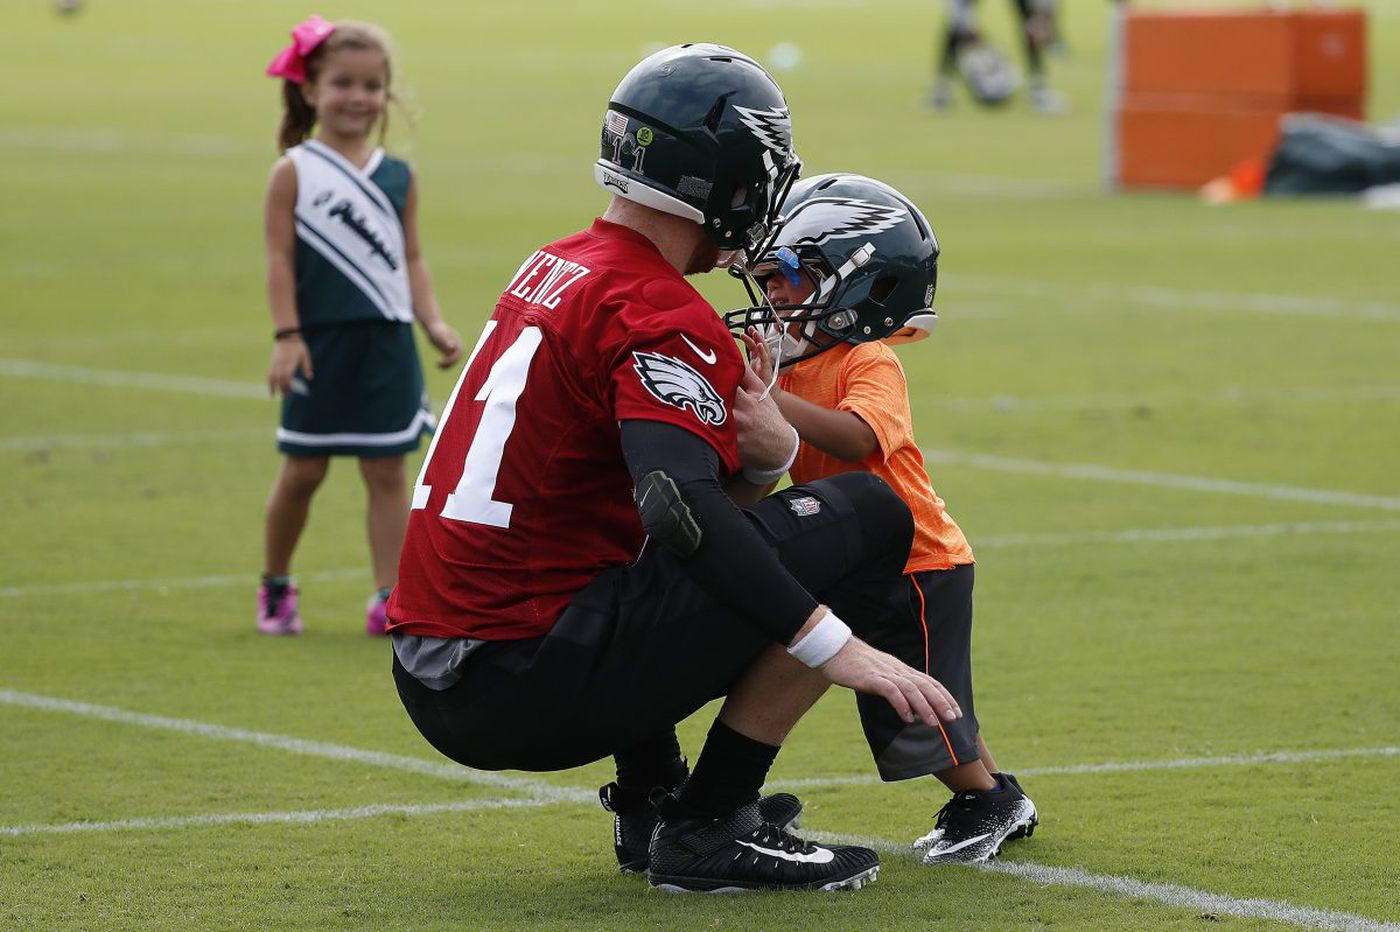 Eagles Practice Observations: The Wentz accuracy train; C.J. Smith moving up; Elijah Qualls down